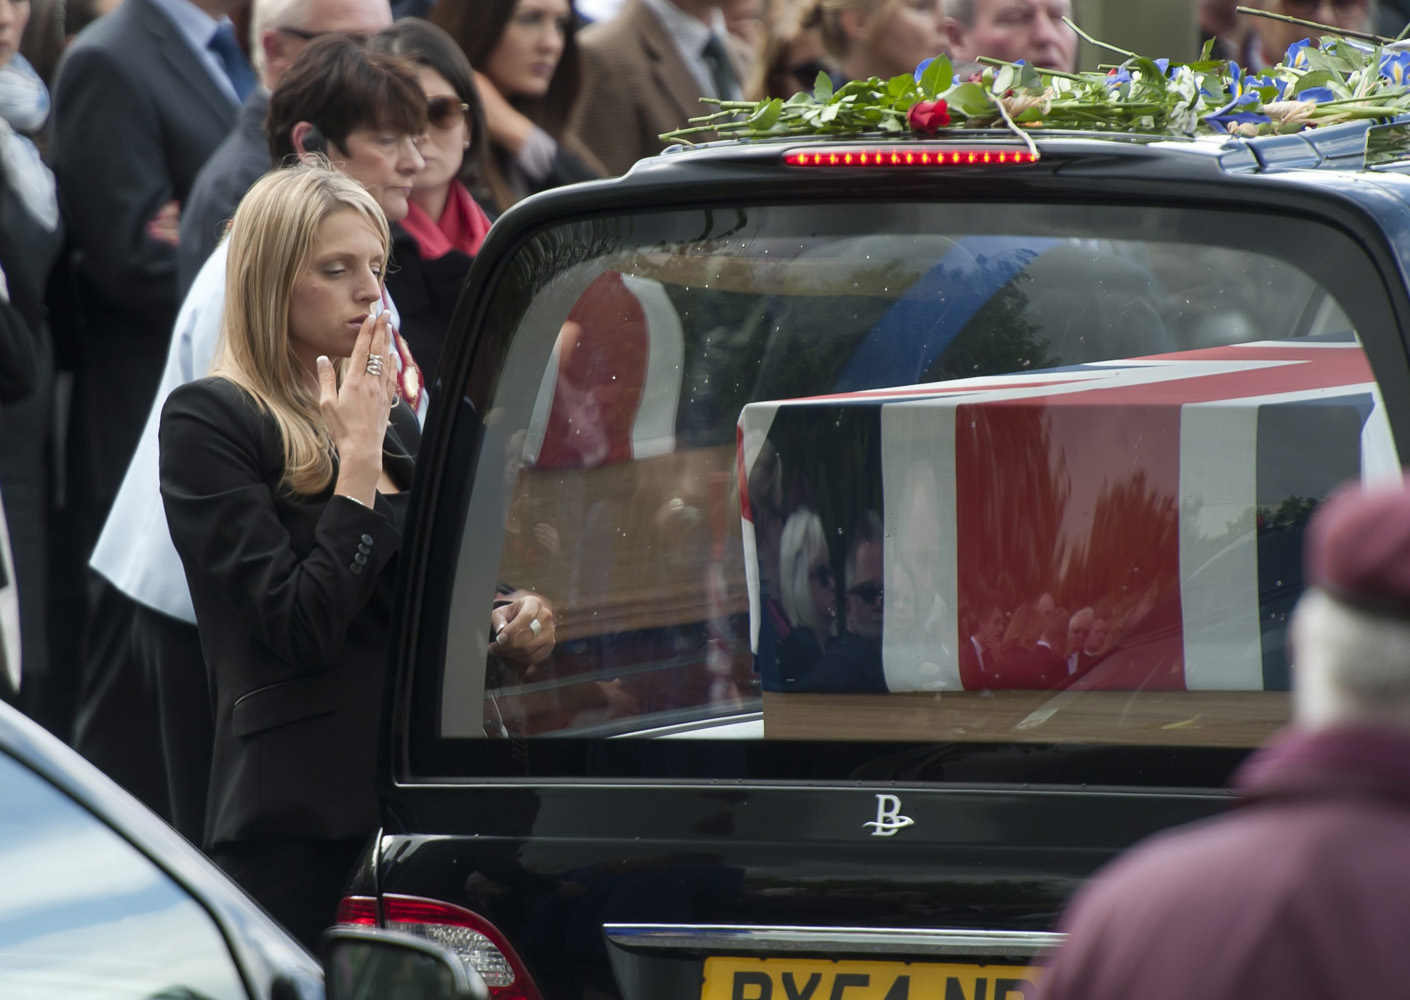 May 7, 2014. A mourner blows a kiss to a departed loved one after the repatriations of Capt Thomas Clarke, Warrant Officer Spencer Faulkner, Cpl James Walters, RAF Intelligence Officer Flt Lt Rakesh Chauhan and L/Cpl Oliver Thomas, who were killed in a helicopter crash on Apr. 26 in Afghanistan.